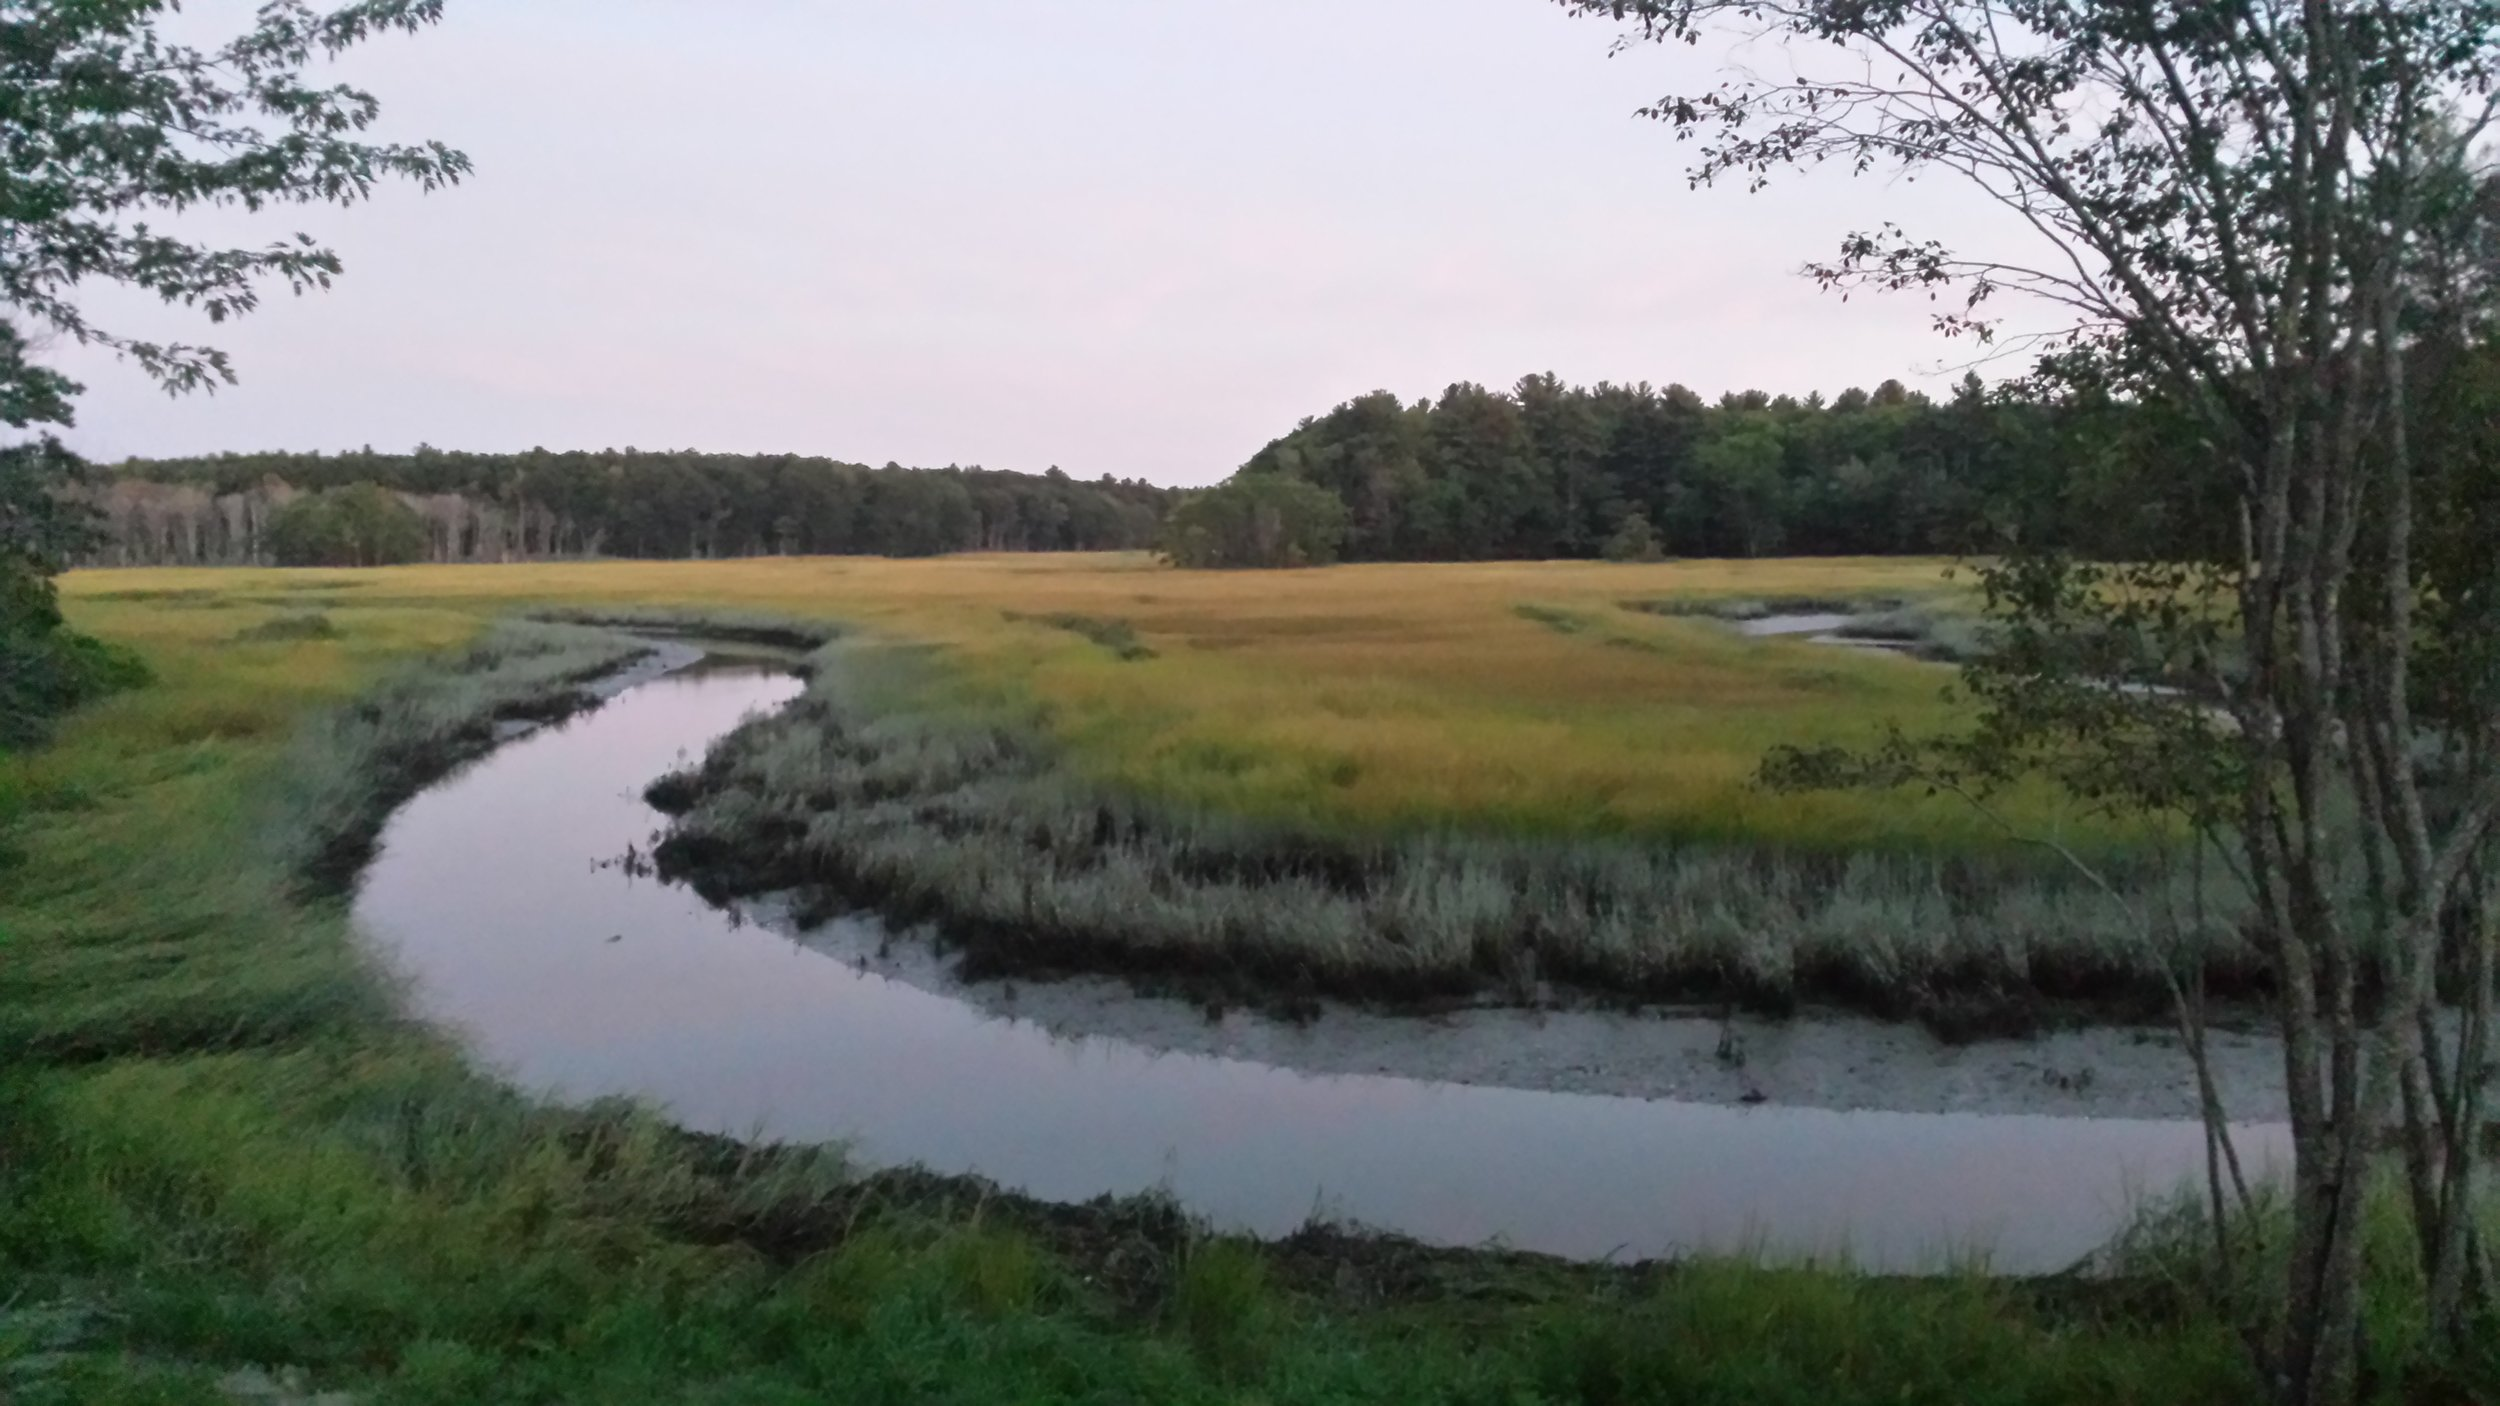 A view of the salt marsh near Scarborough, Maine